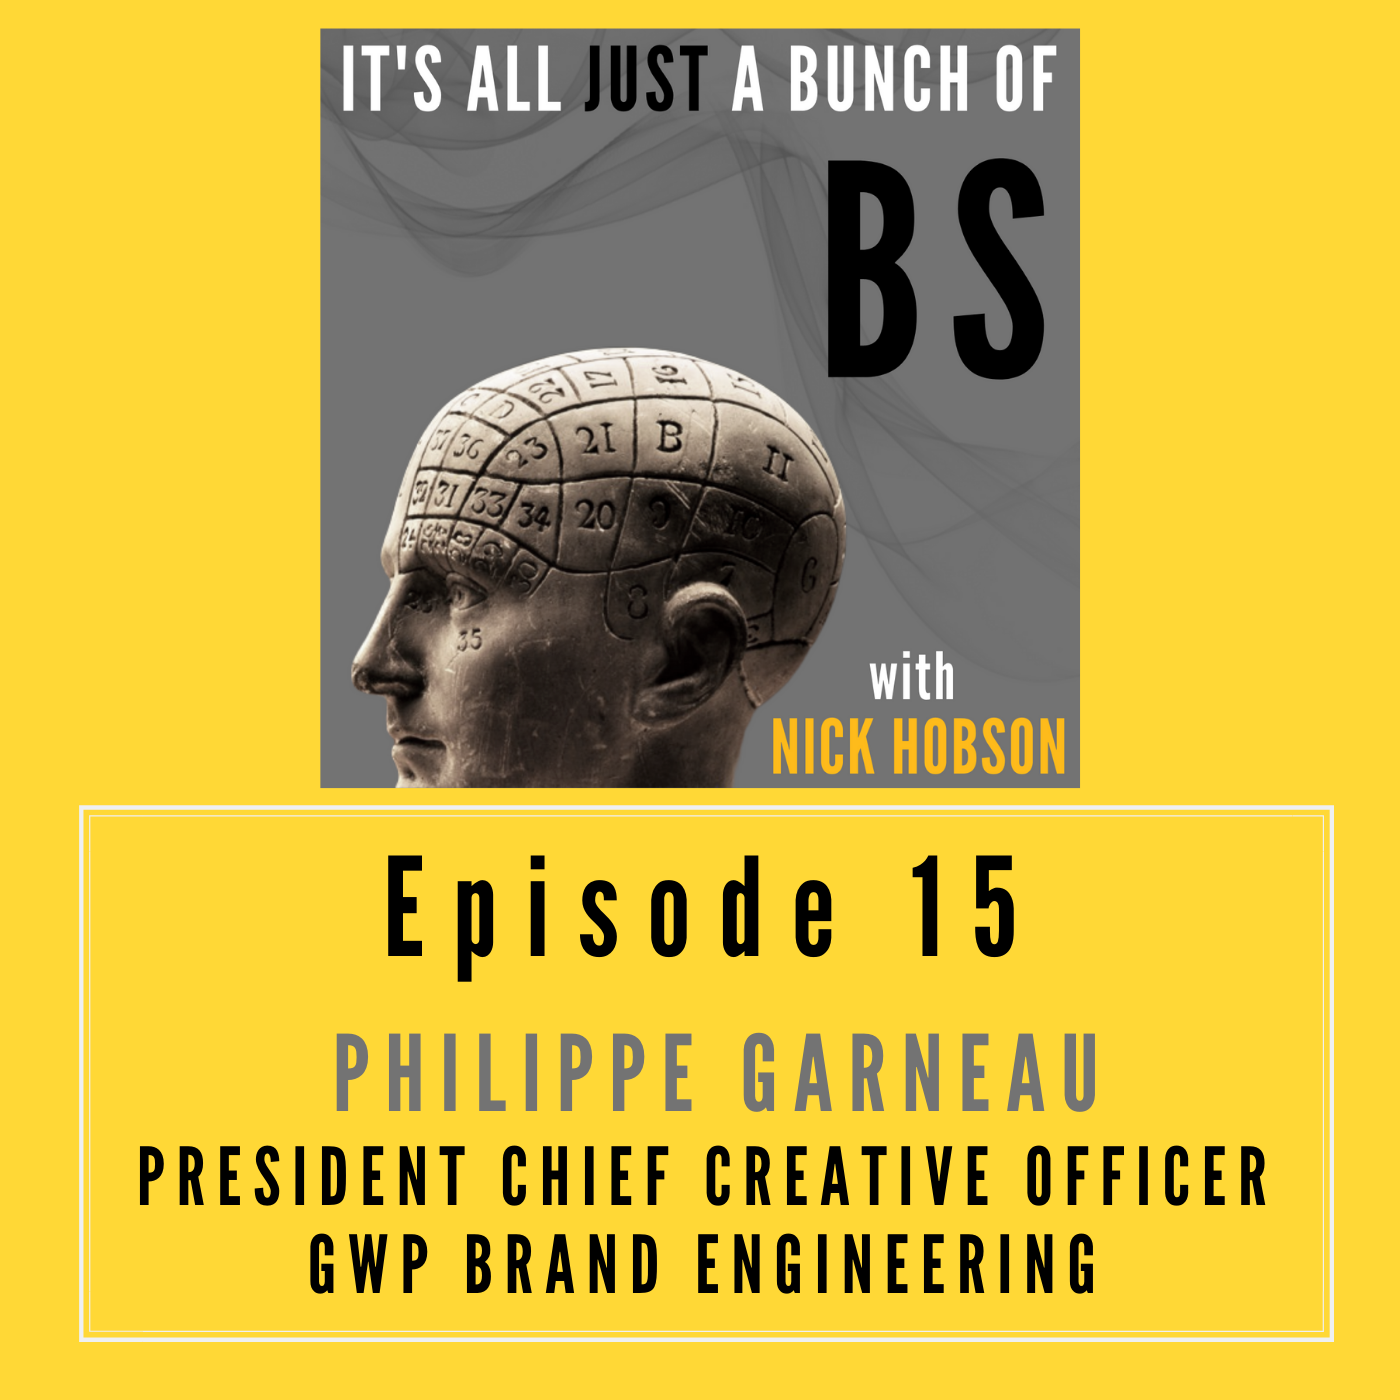 Episode 15 with PHILIPPE GARNEAU: Branding and BS, Strange Bedfellows Coming Together